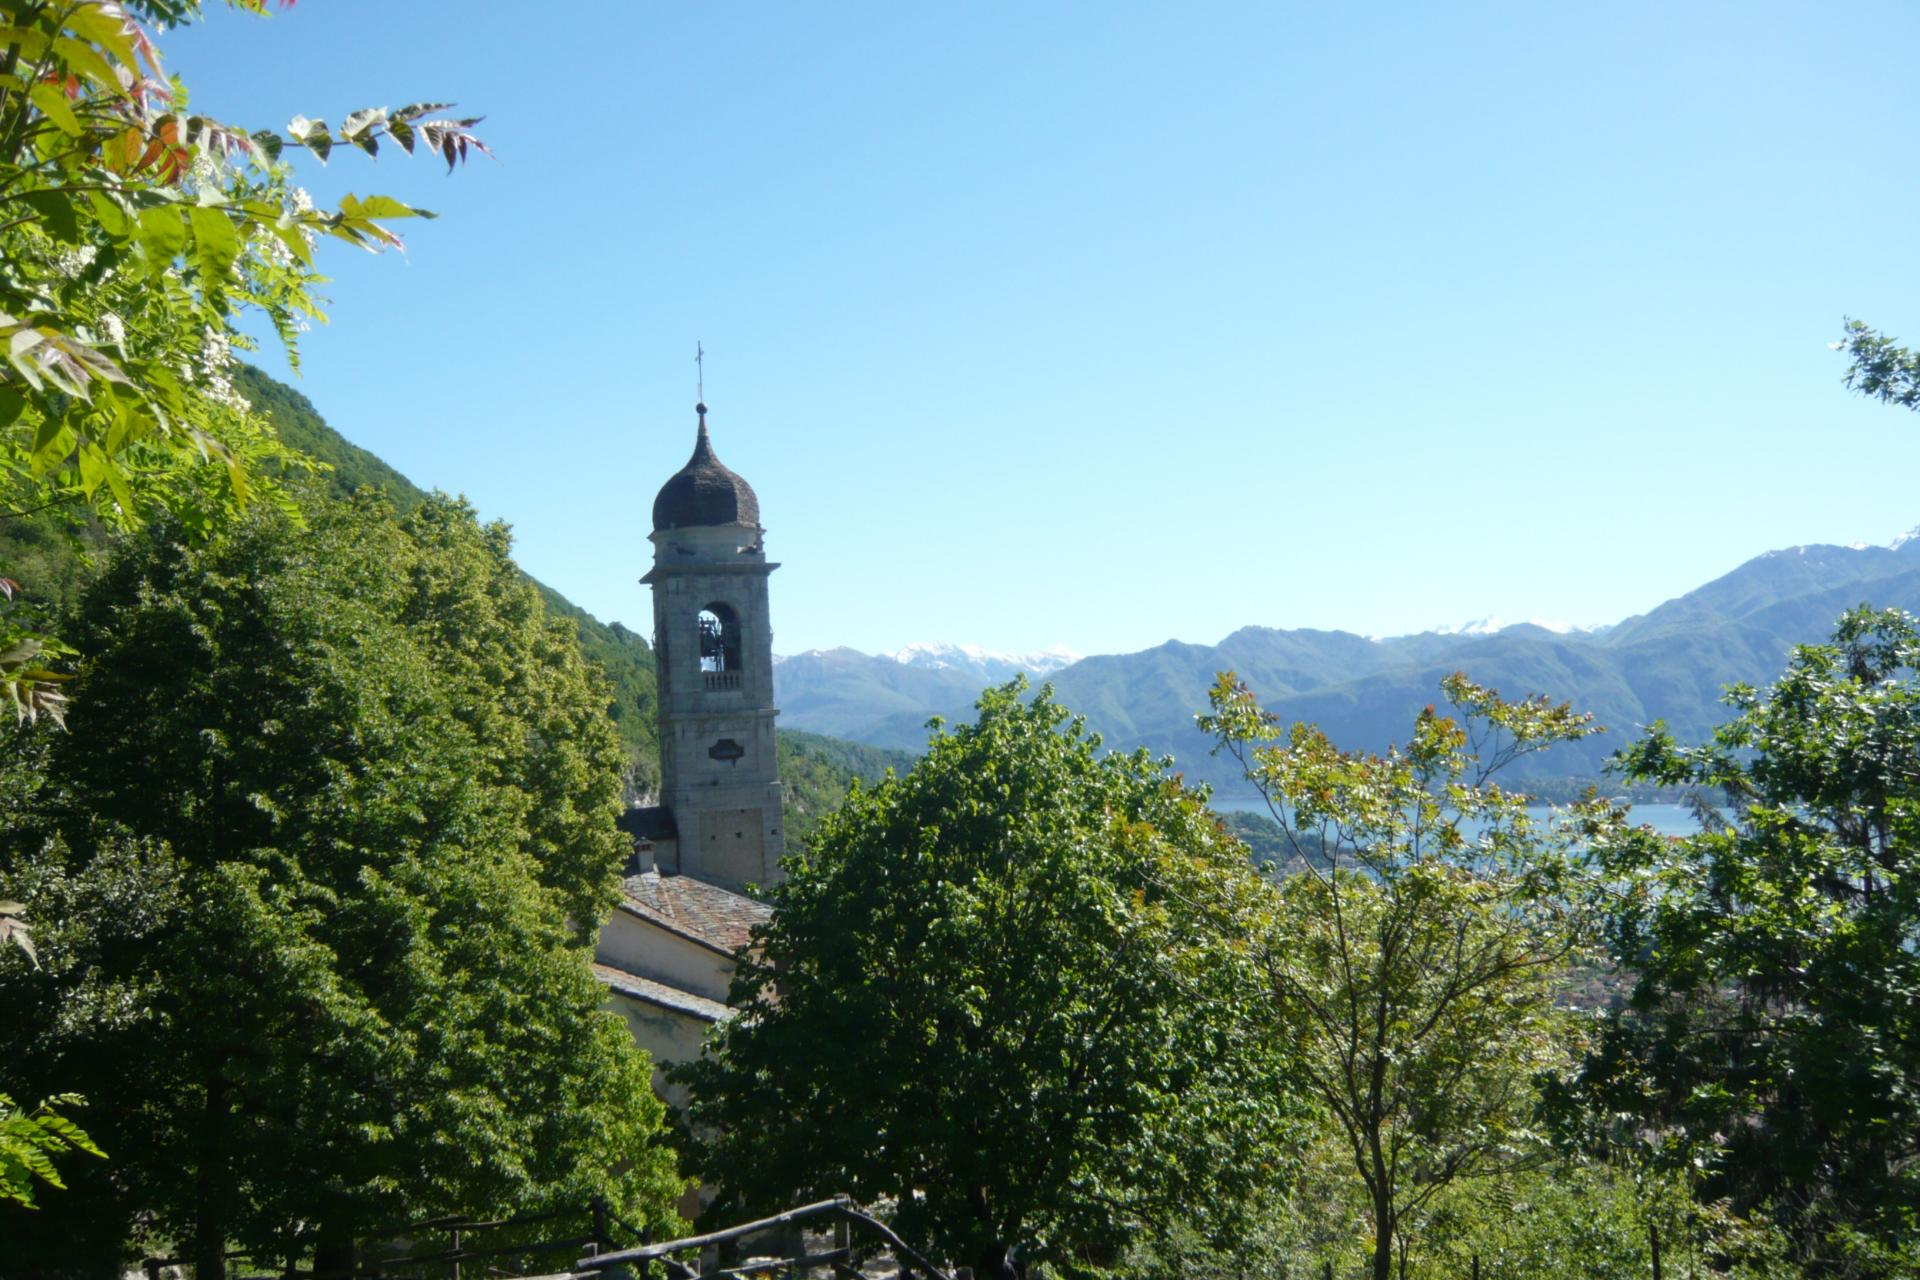 Hiking tour in Italy Lake Como, North Italy Dolomites area